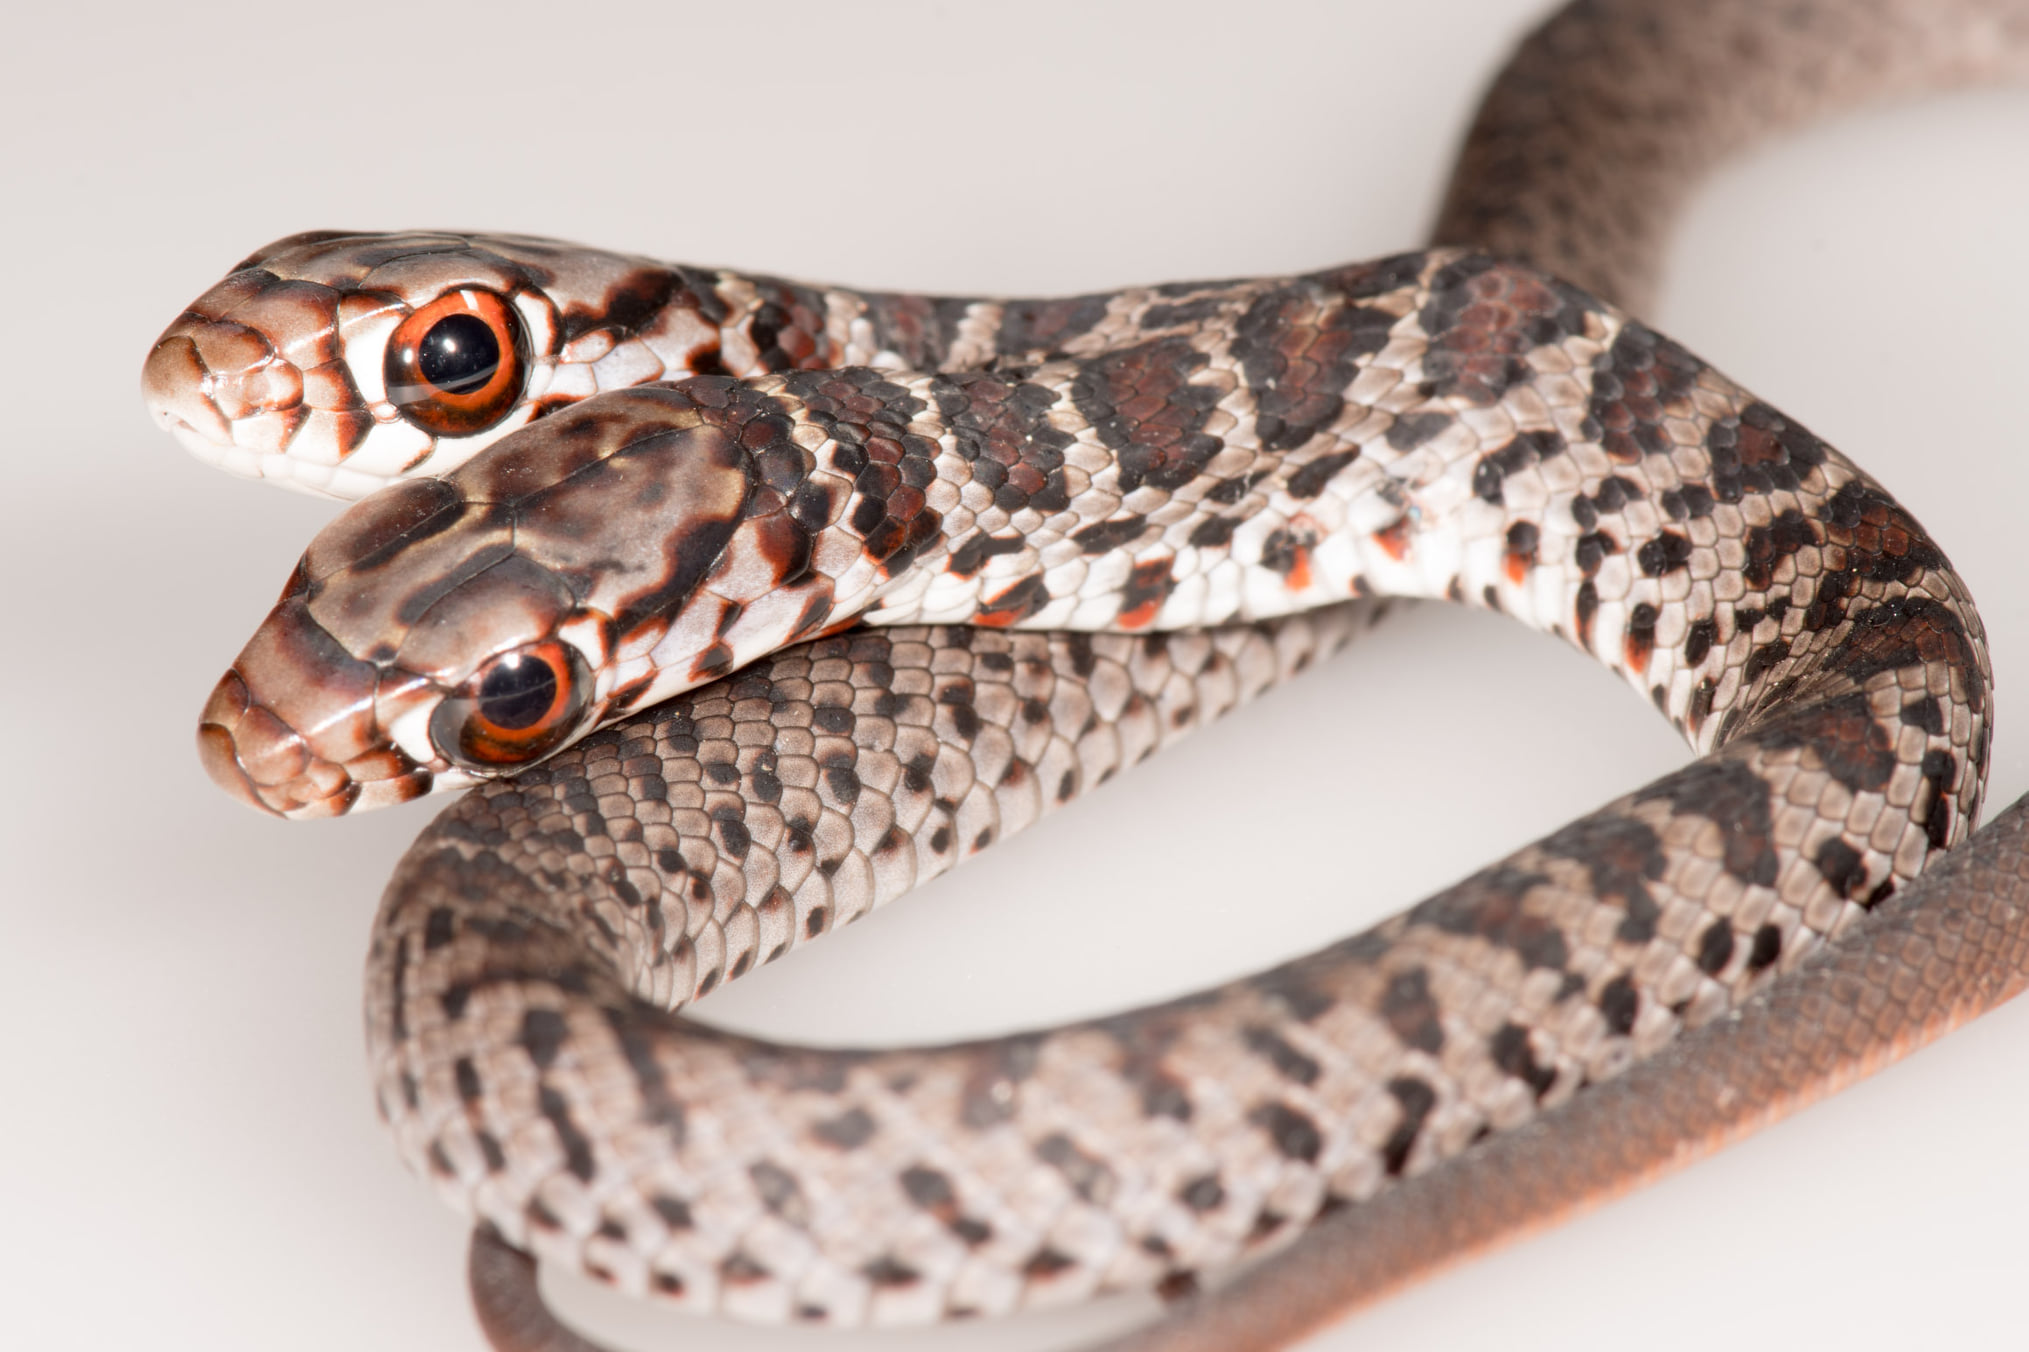 Rare, 2-headed snake discovered by Florida house cat | Live Science